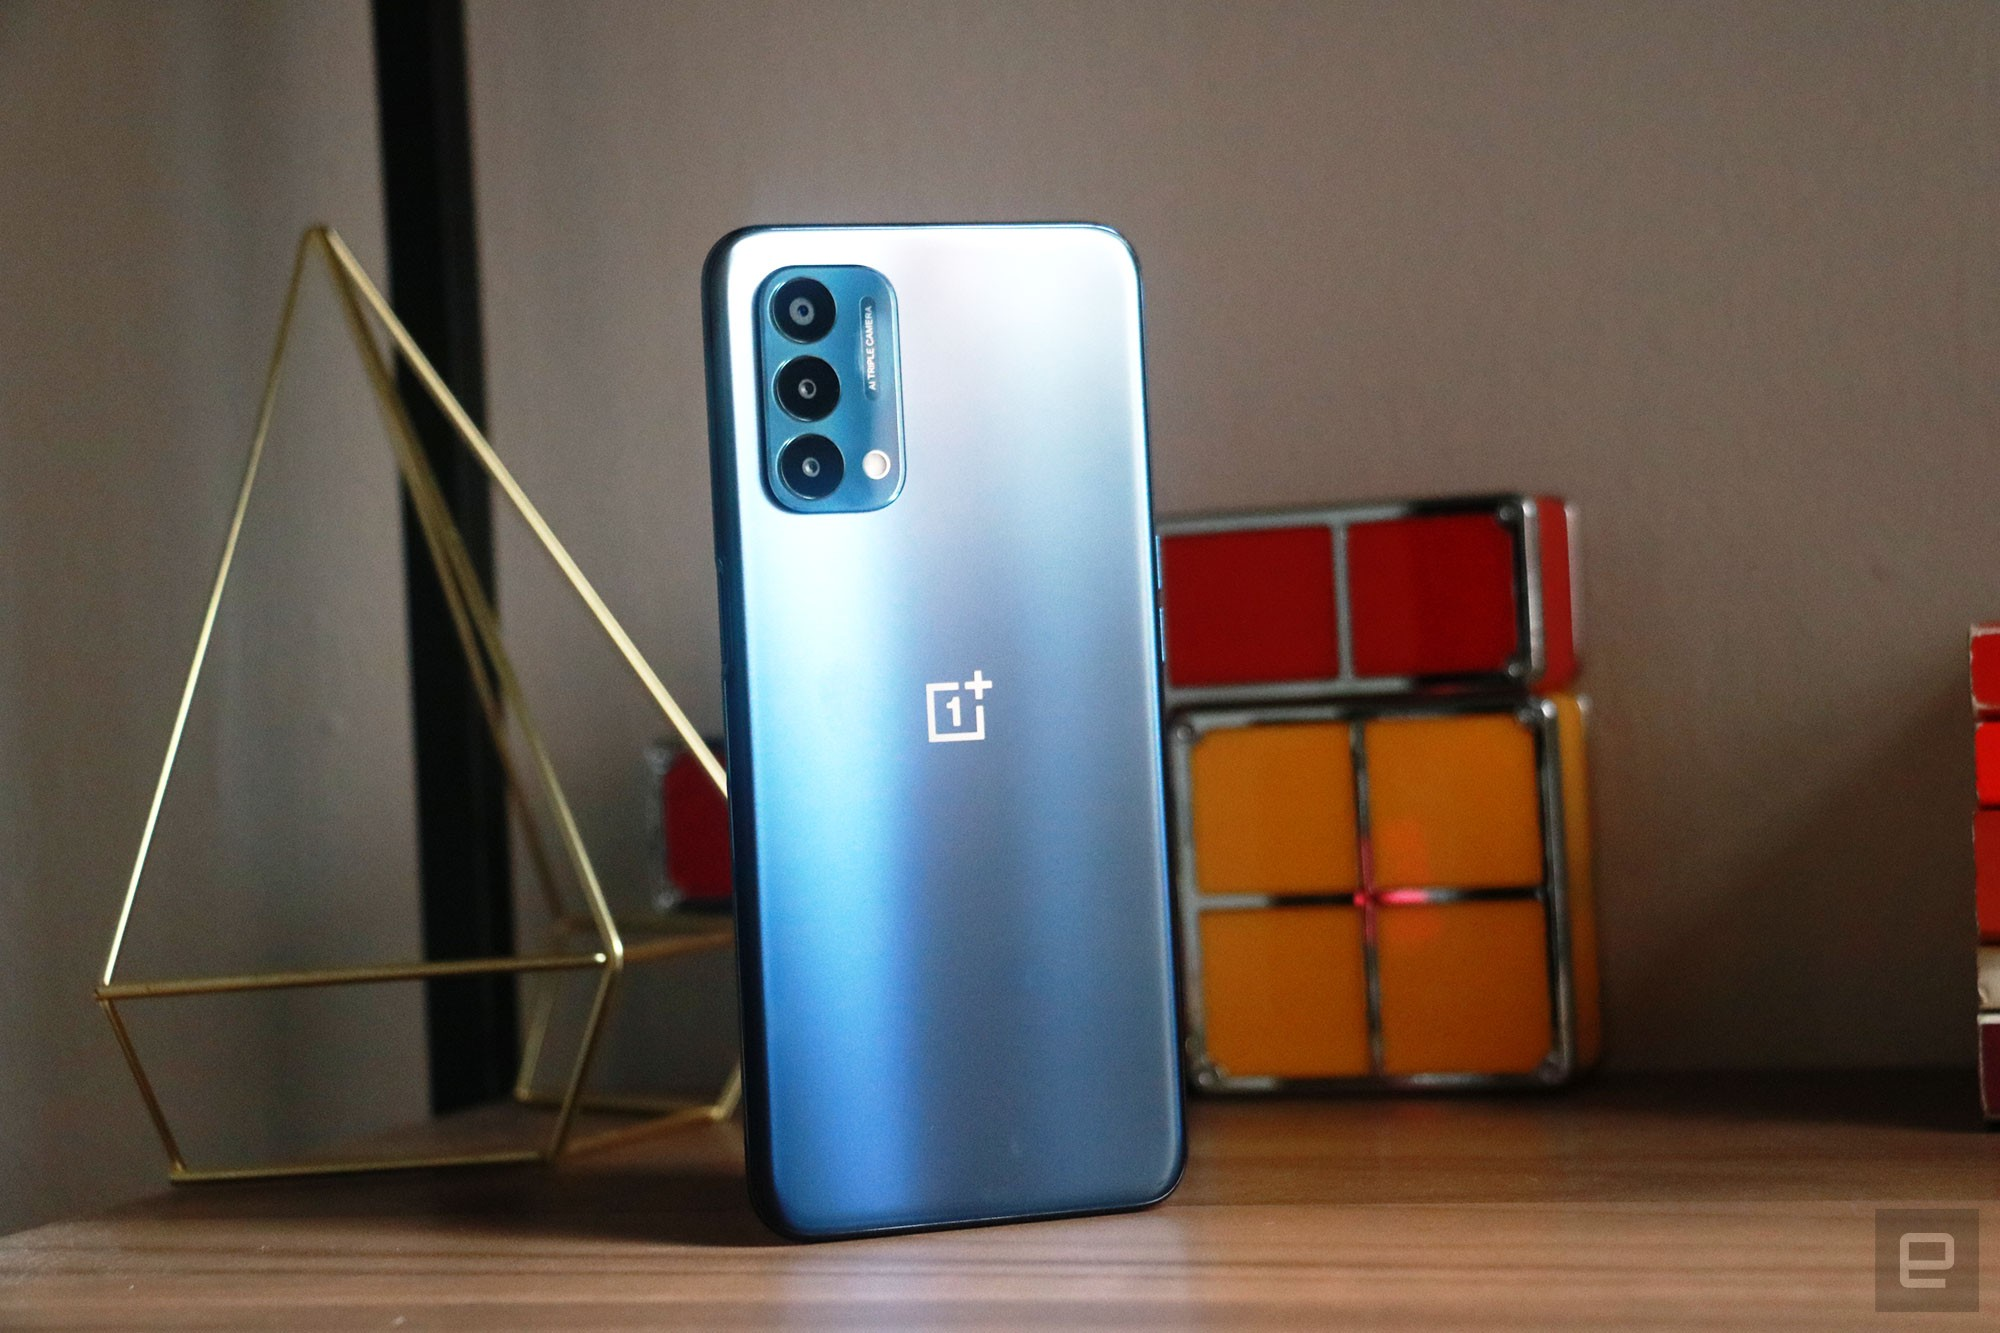 <p>OnePlus Nord N200 5G. Off angle view of the phone sitting on a shelf with ornaments in the background with its rear facing outwards.</p>